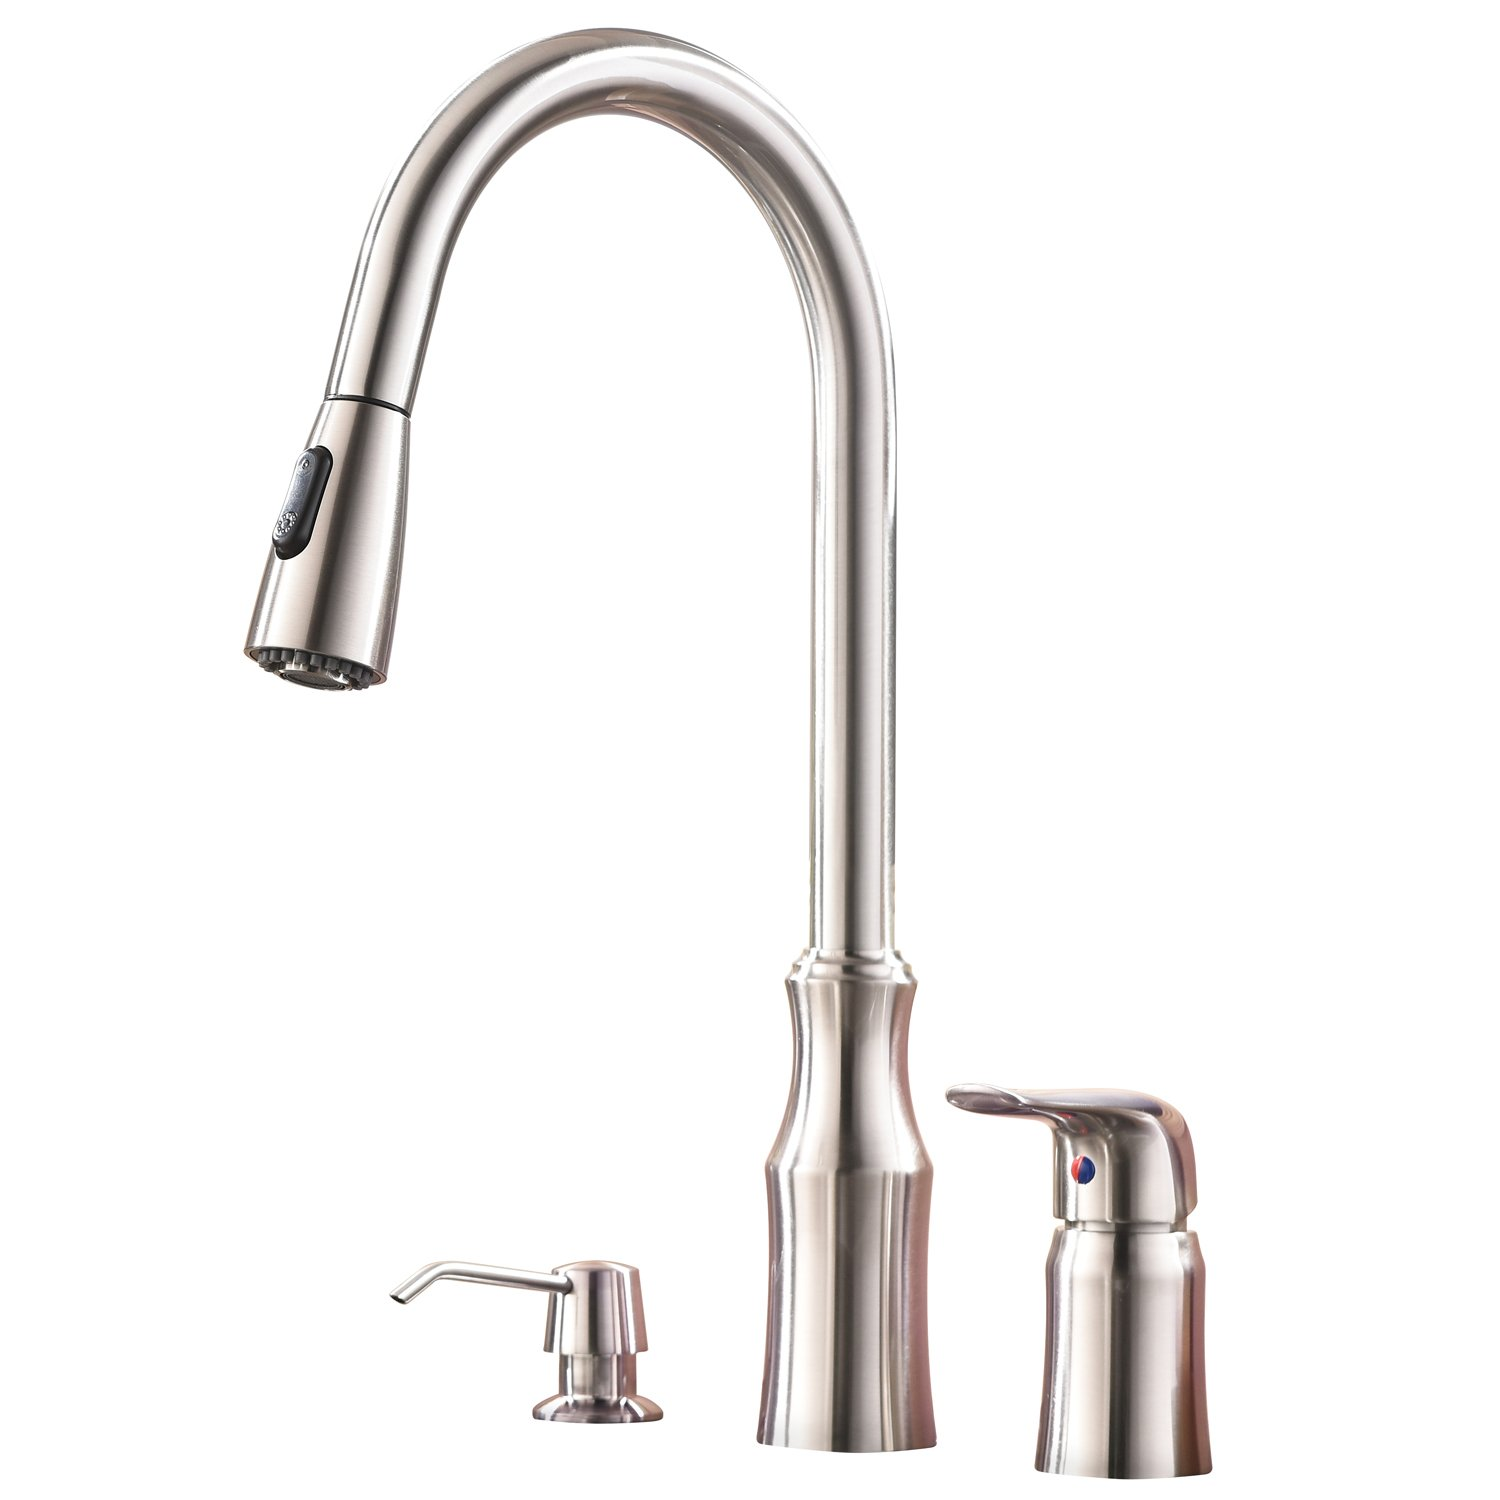 Hotis Modern High Arc Pull Out Stainless Steel Single Handle Pull Down Kitchen Sink Faucet,Brushed Nickel Kitchen Faucet with Soap Dispenser